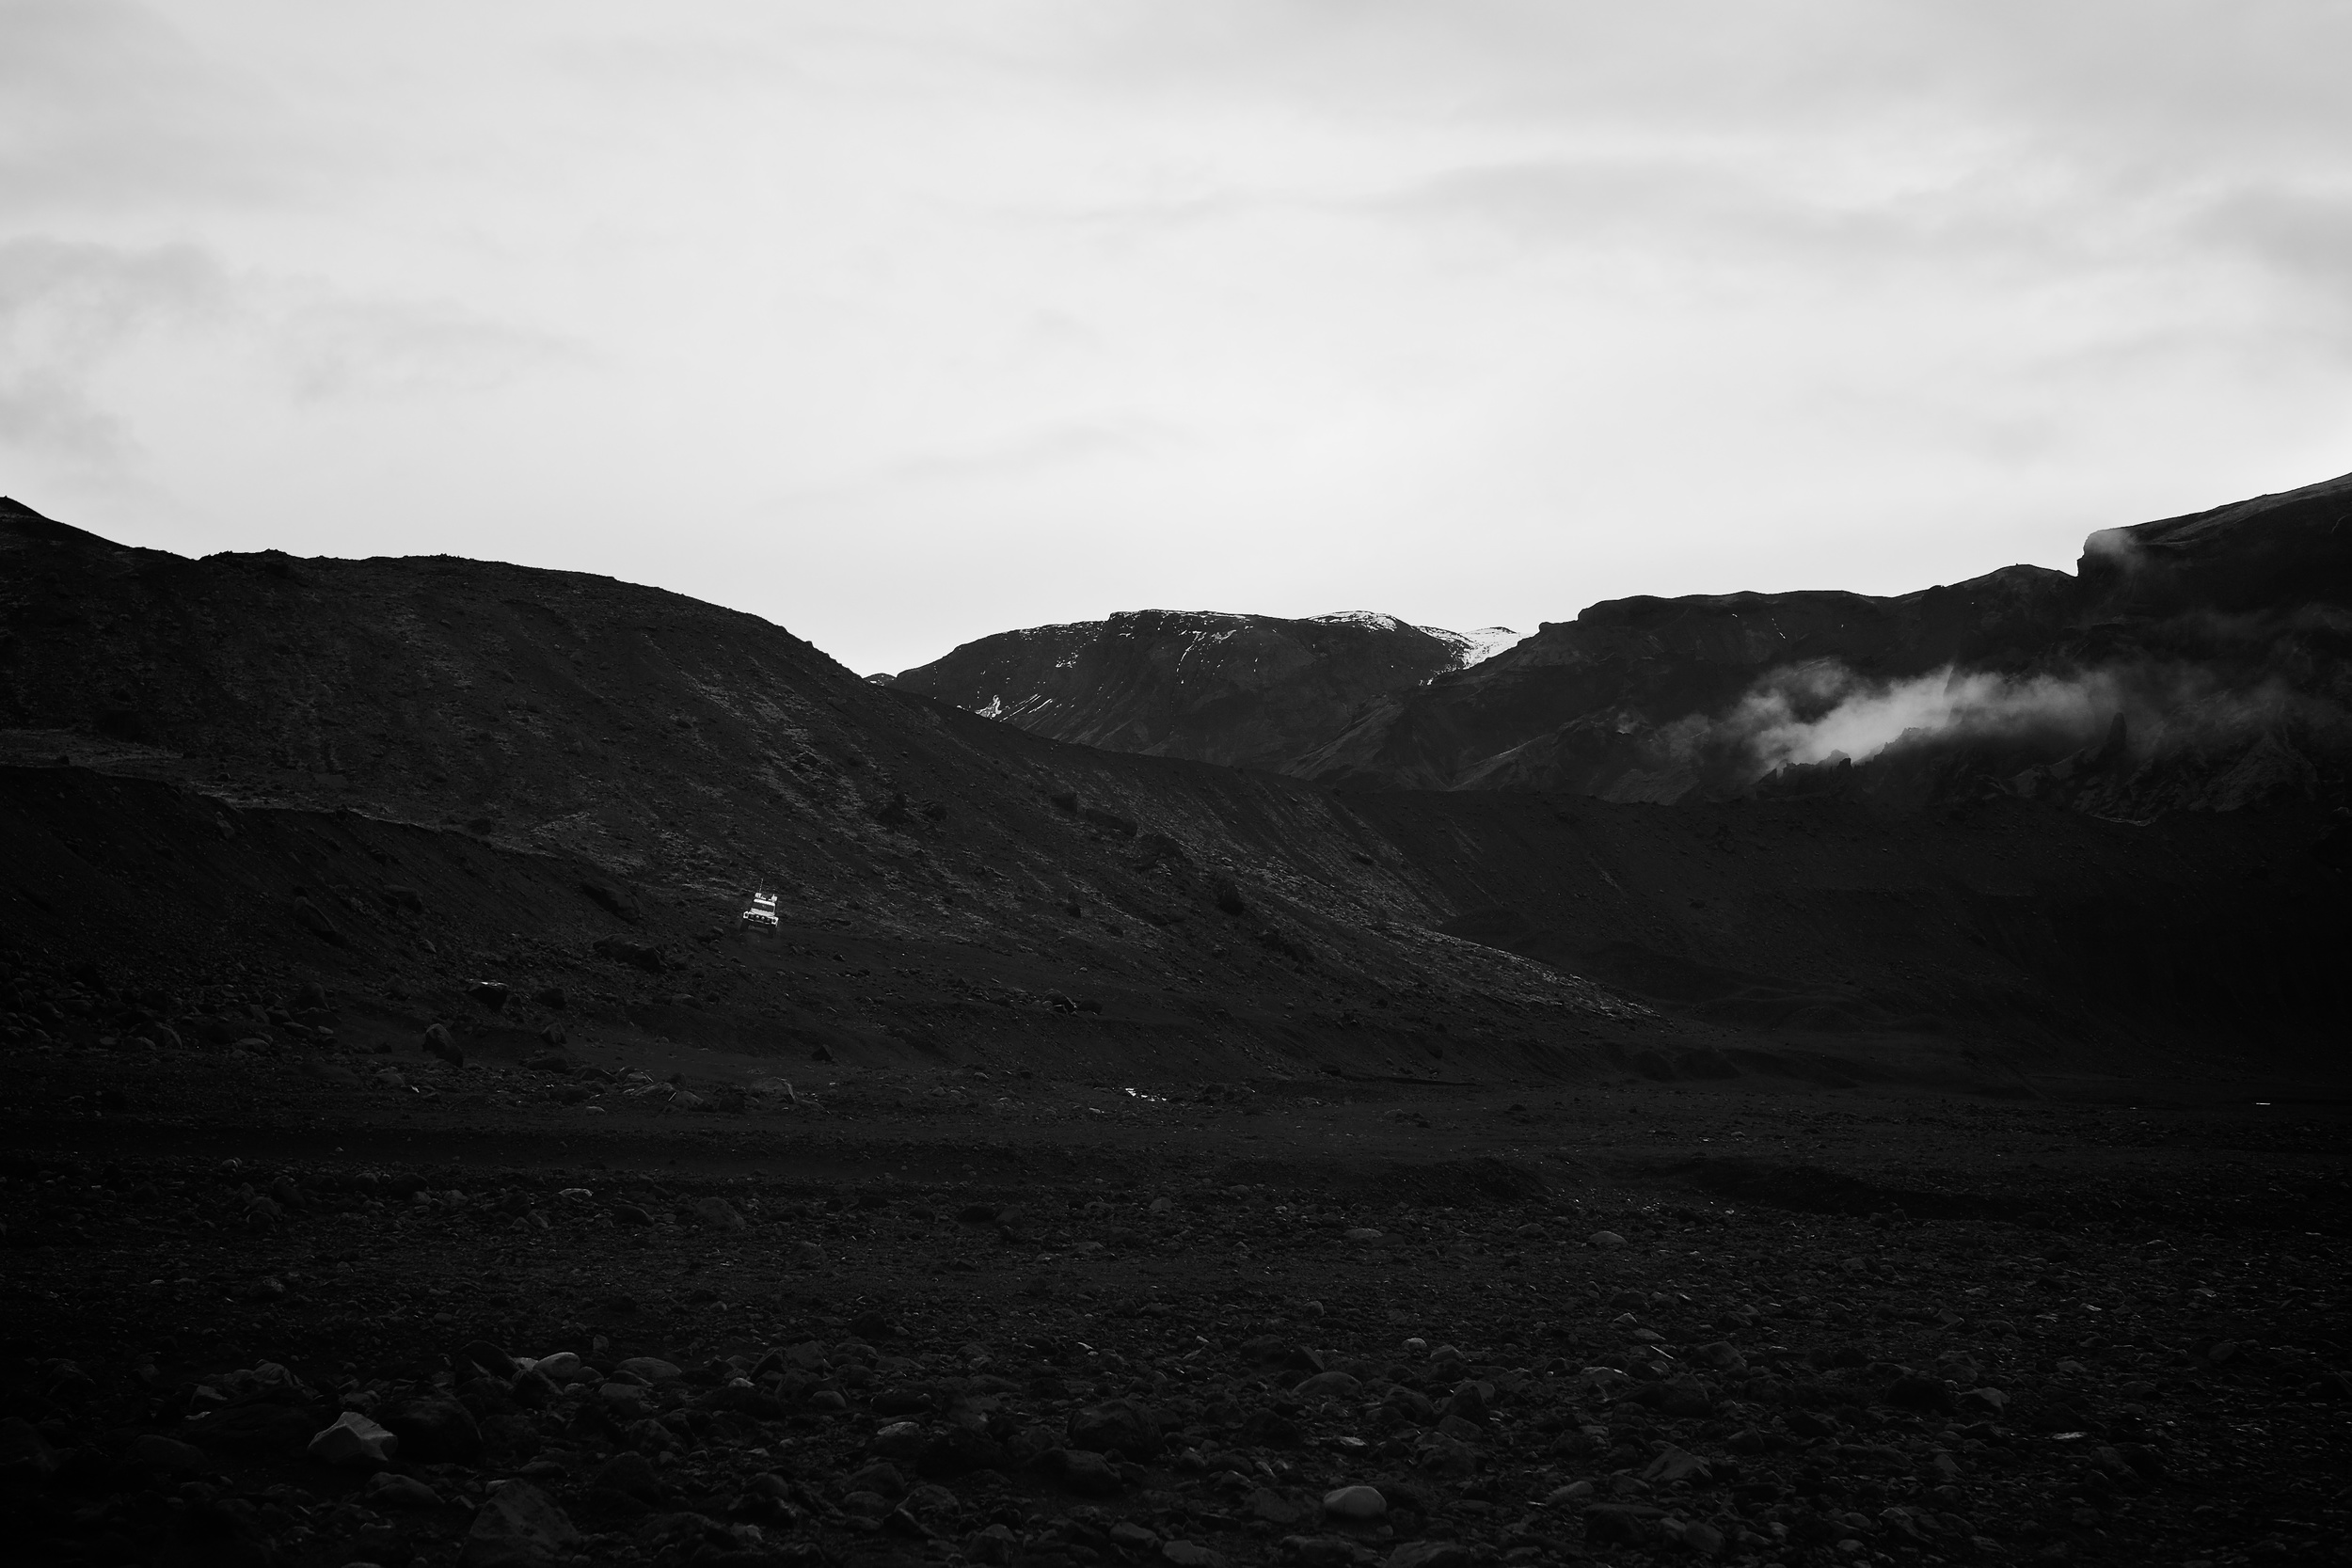 As we rode deeper into the Highlands towards three [active] volcanos and a glacier.